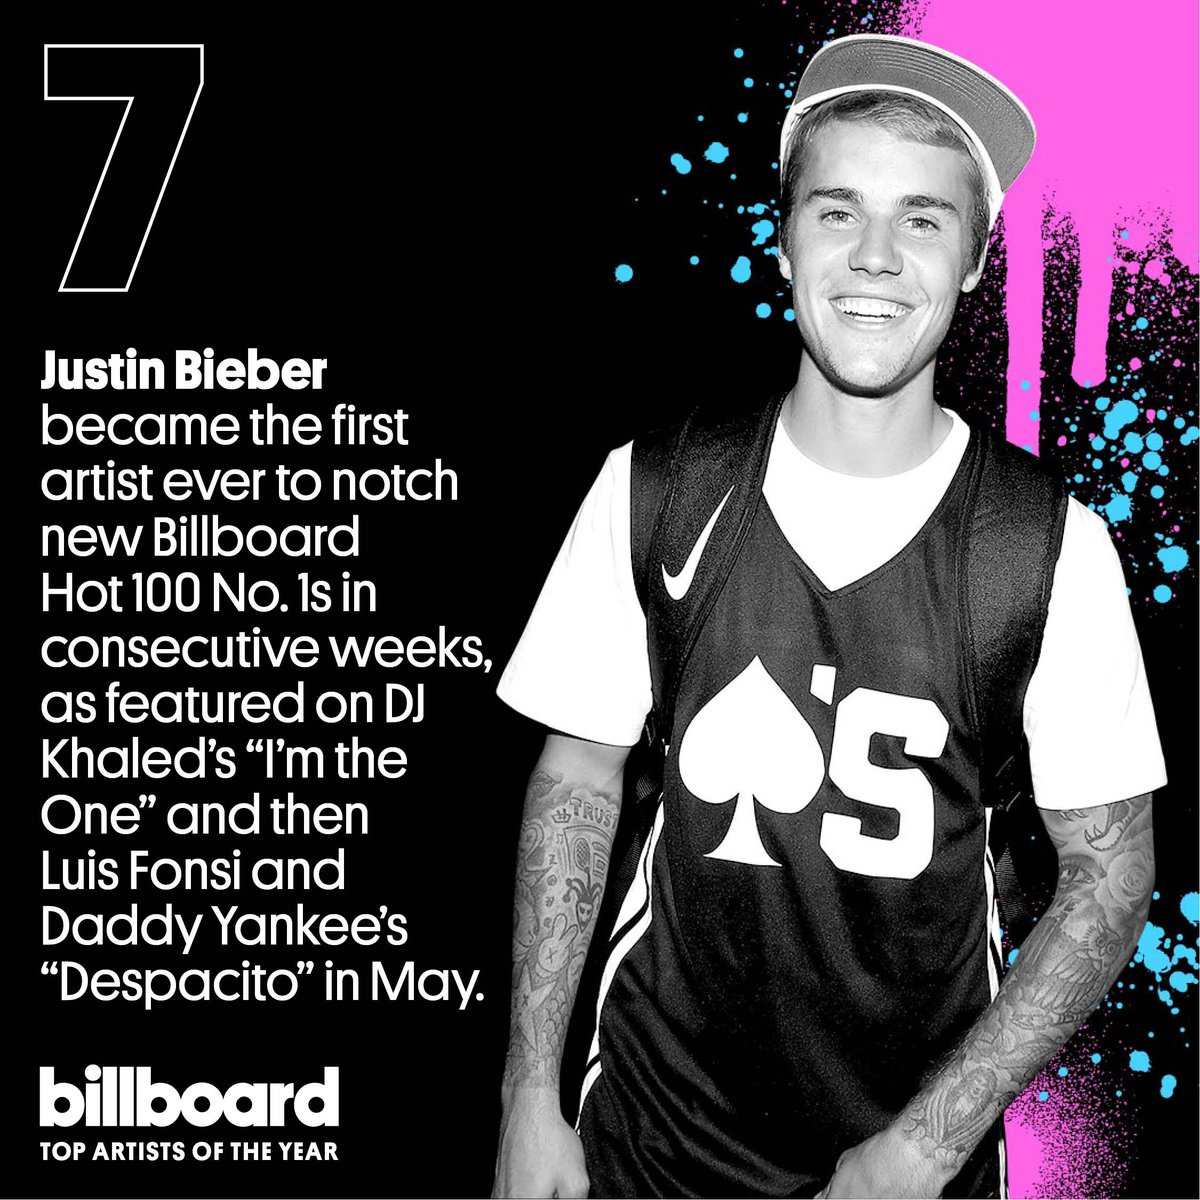 .@JustinBieber comes in at No. 7 on our top artists of the year list! #YearInMusic https://t.co/Hsjqn3LzvN https://t.co/BpWkgI1PLZ